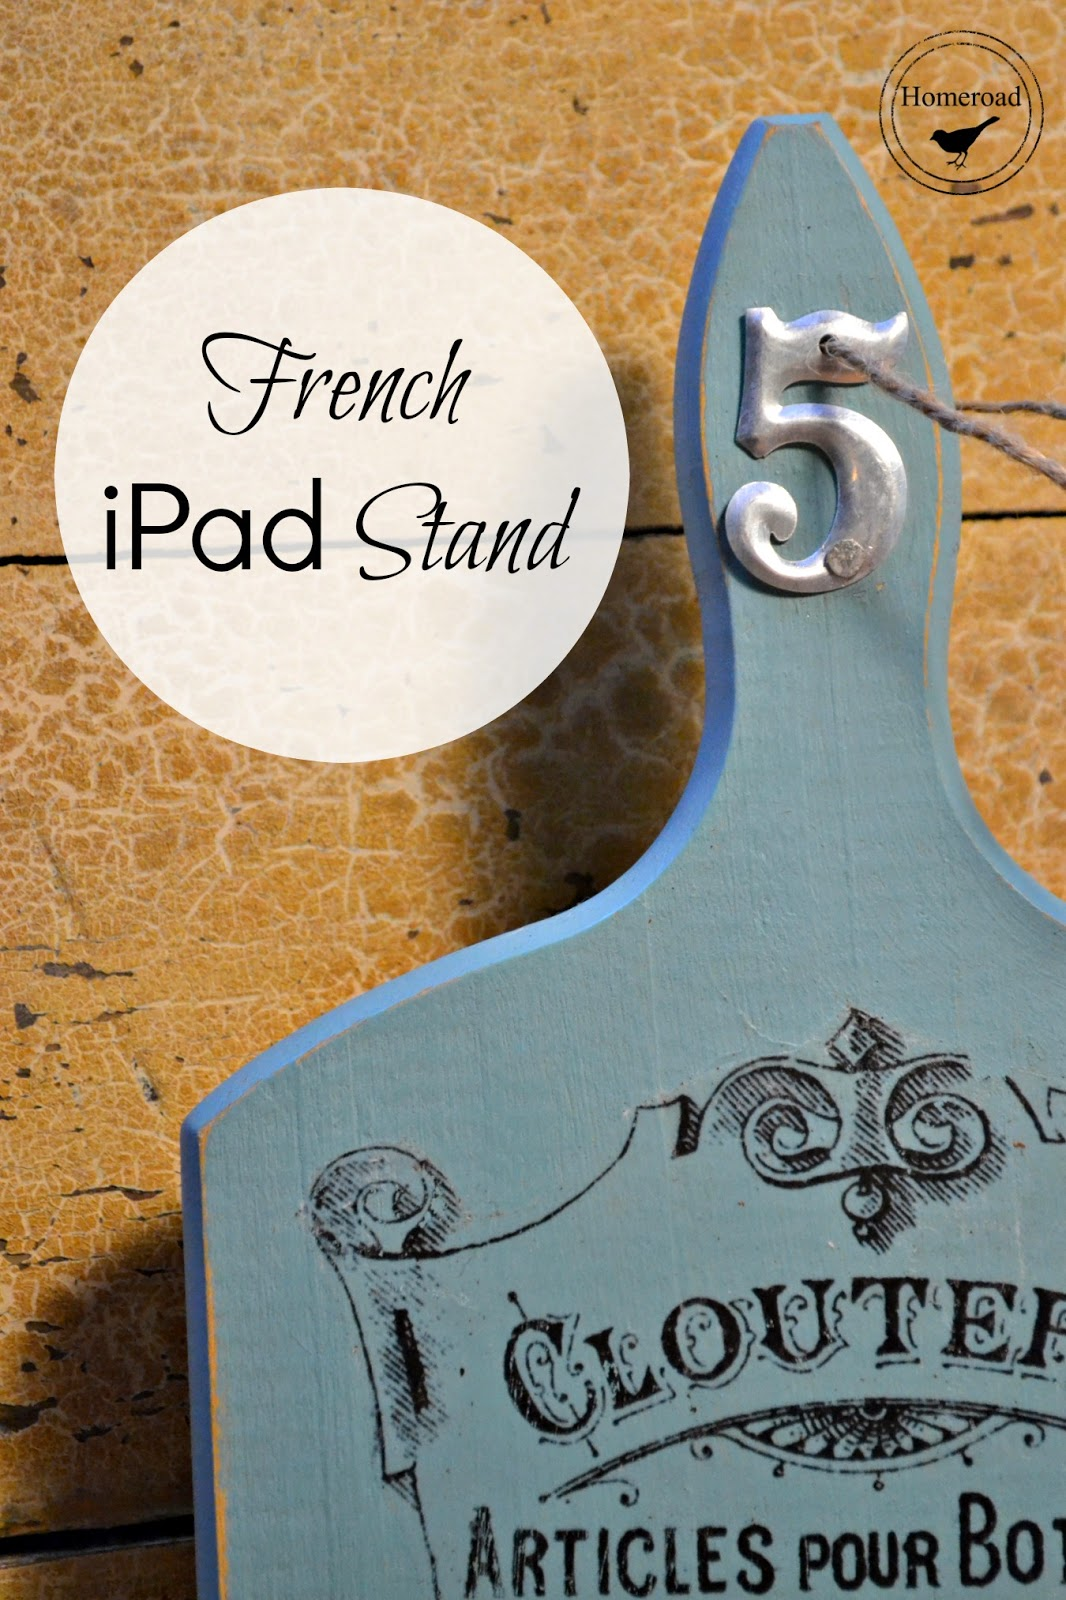 French-ipad-stand www.homeroad.net